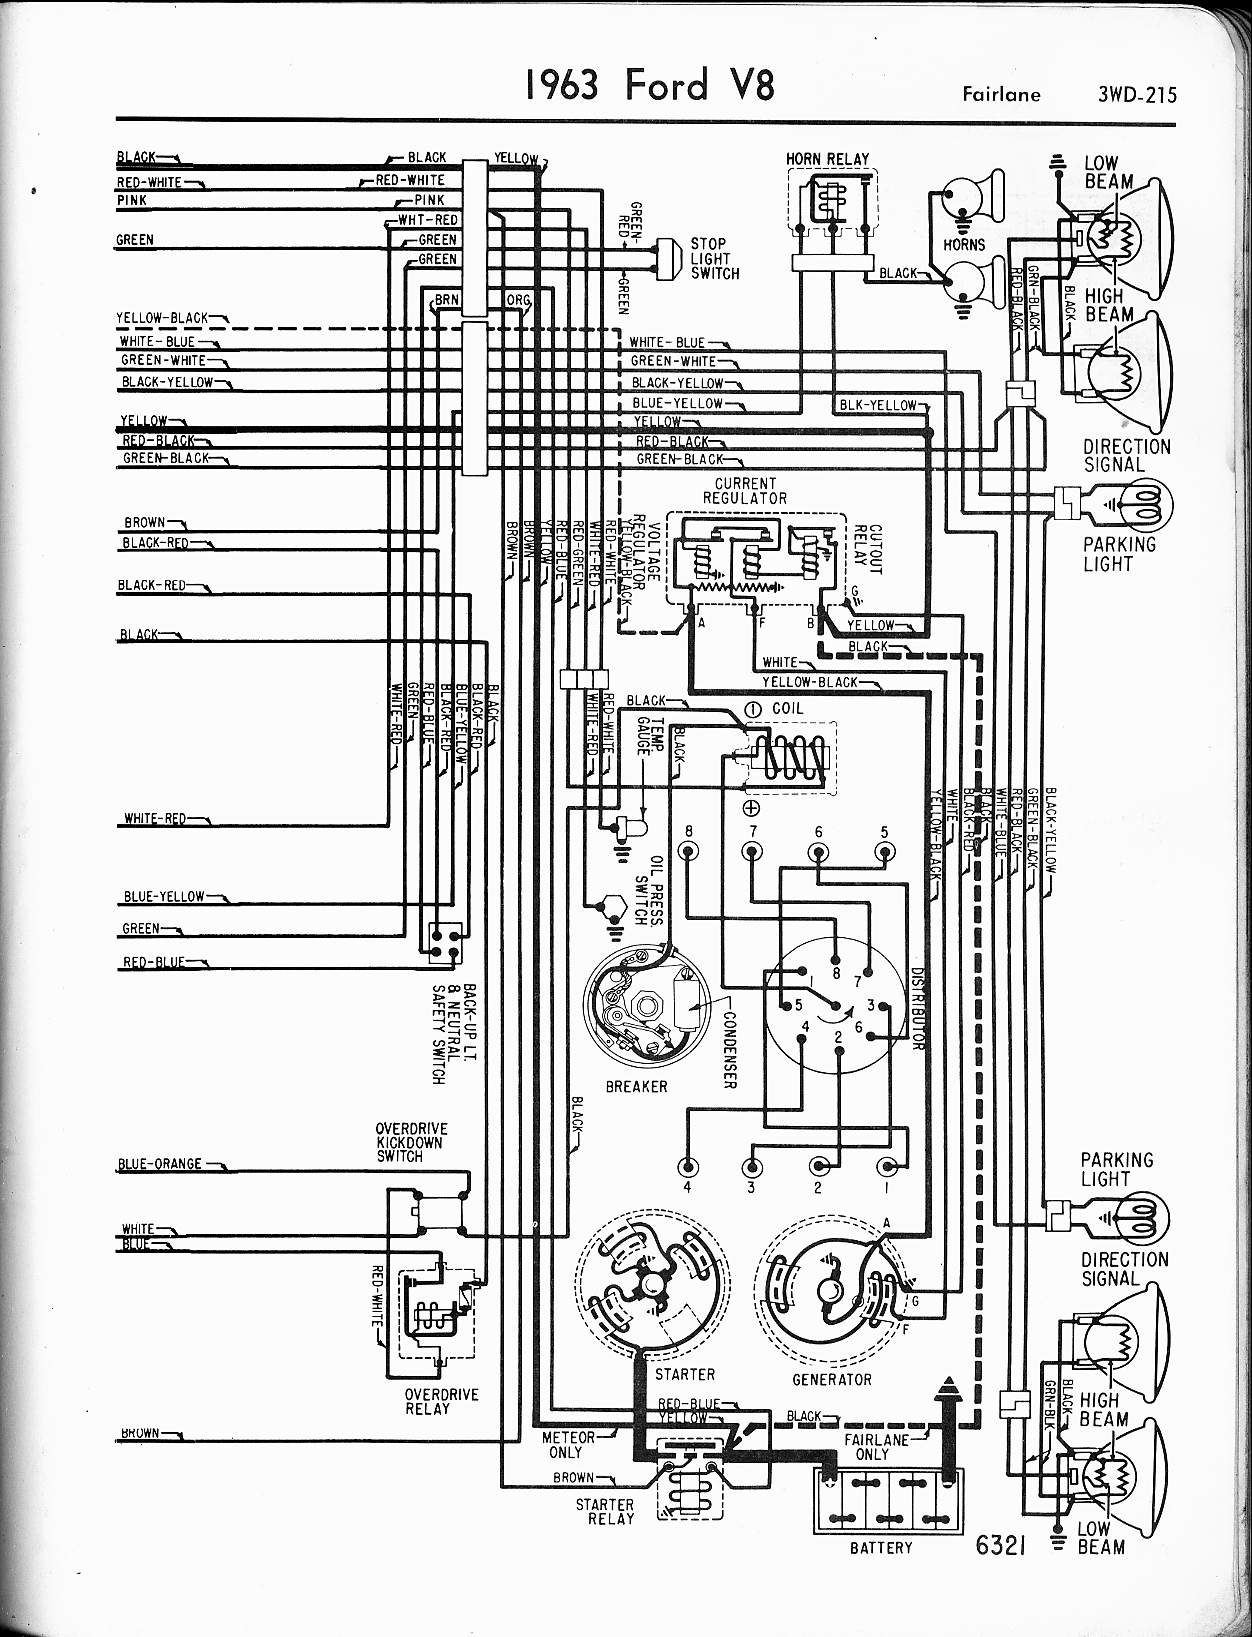 1967 Ford F100 Wiring Diagram from www.oldcarmanualproject.com